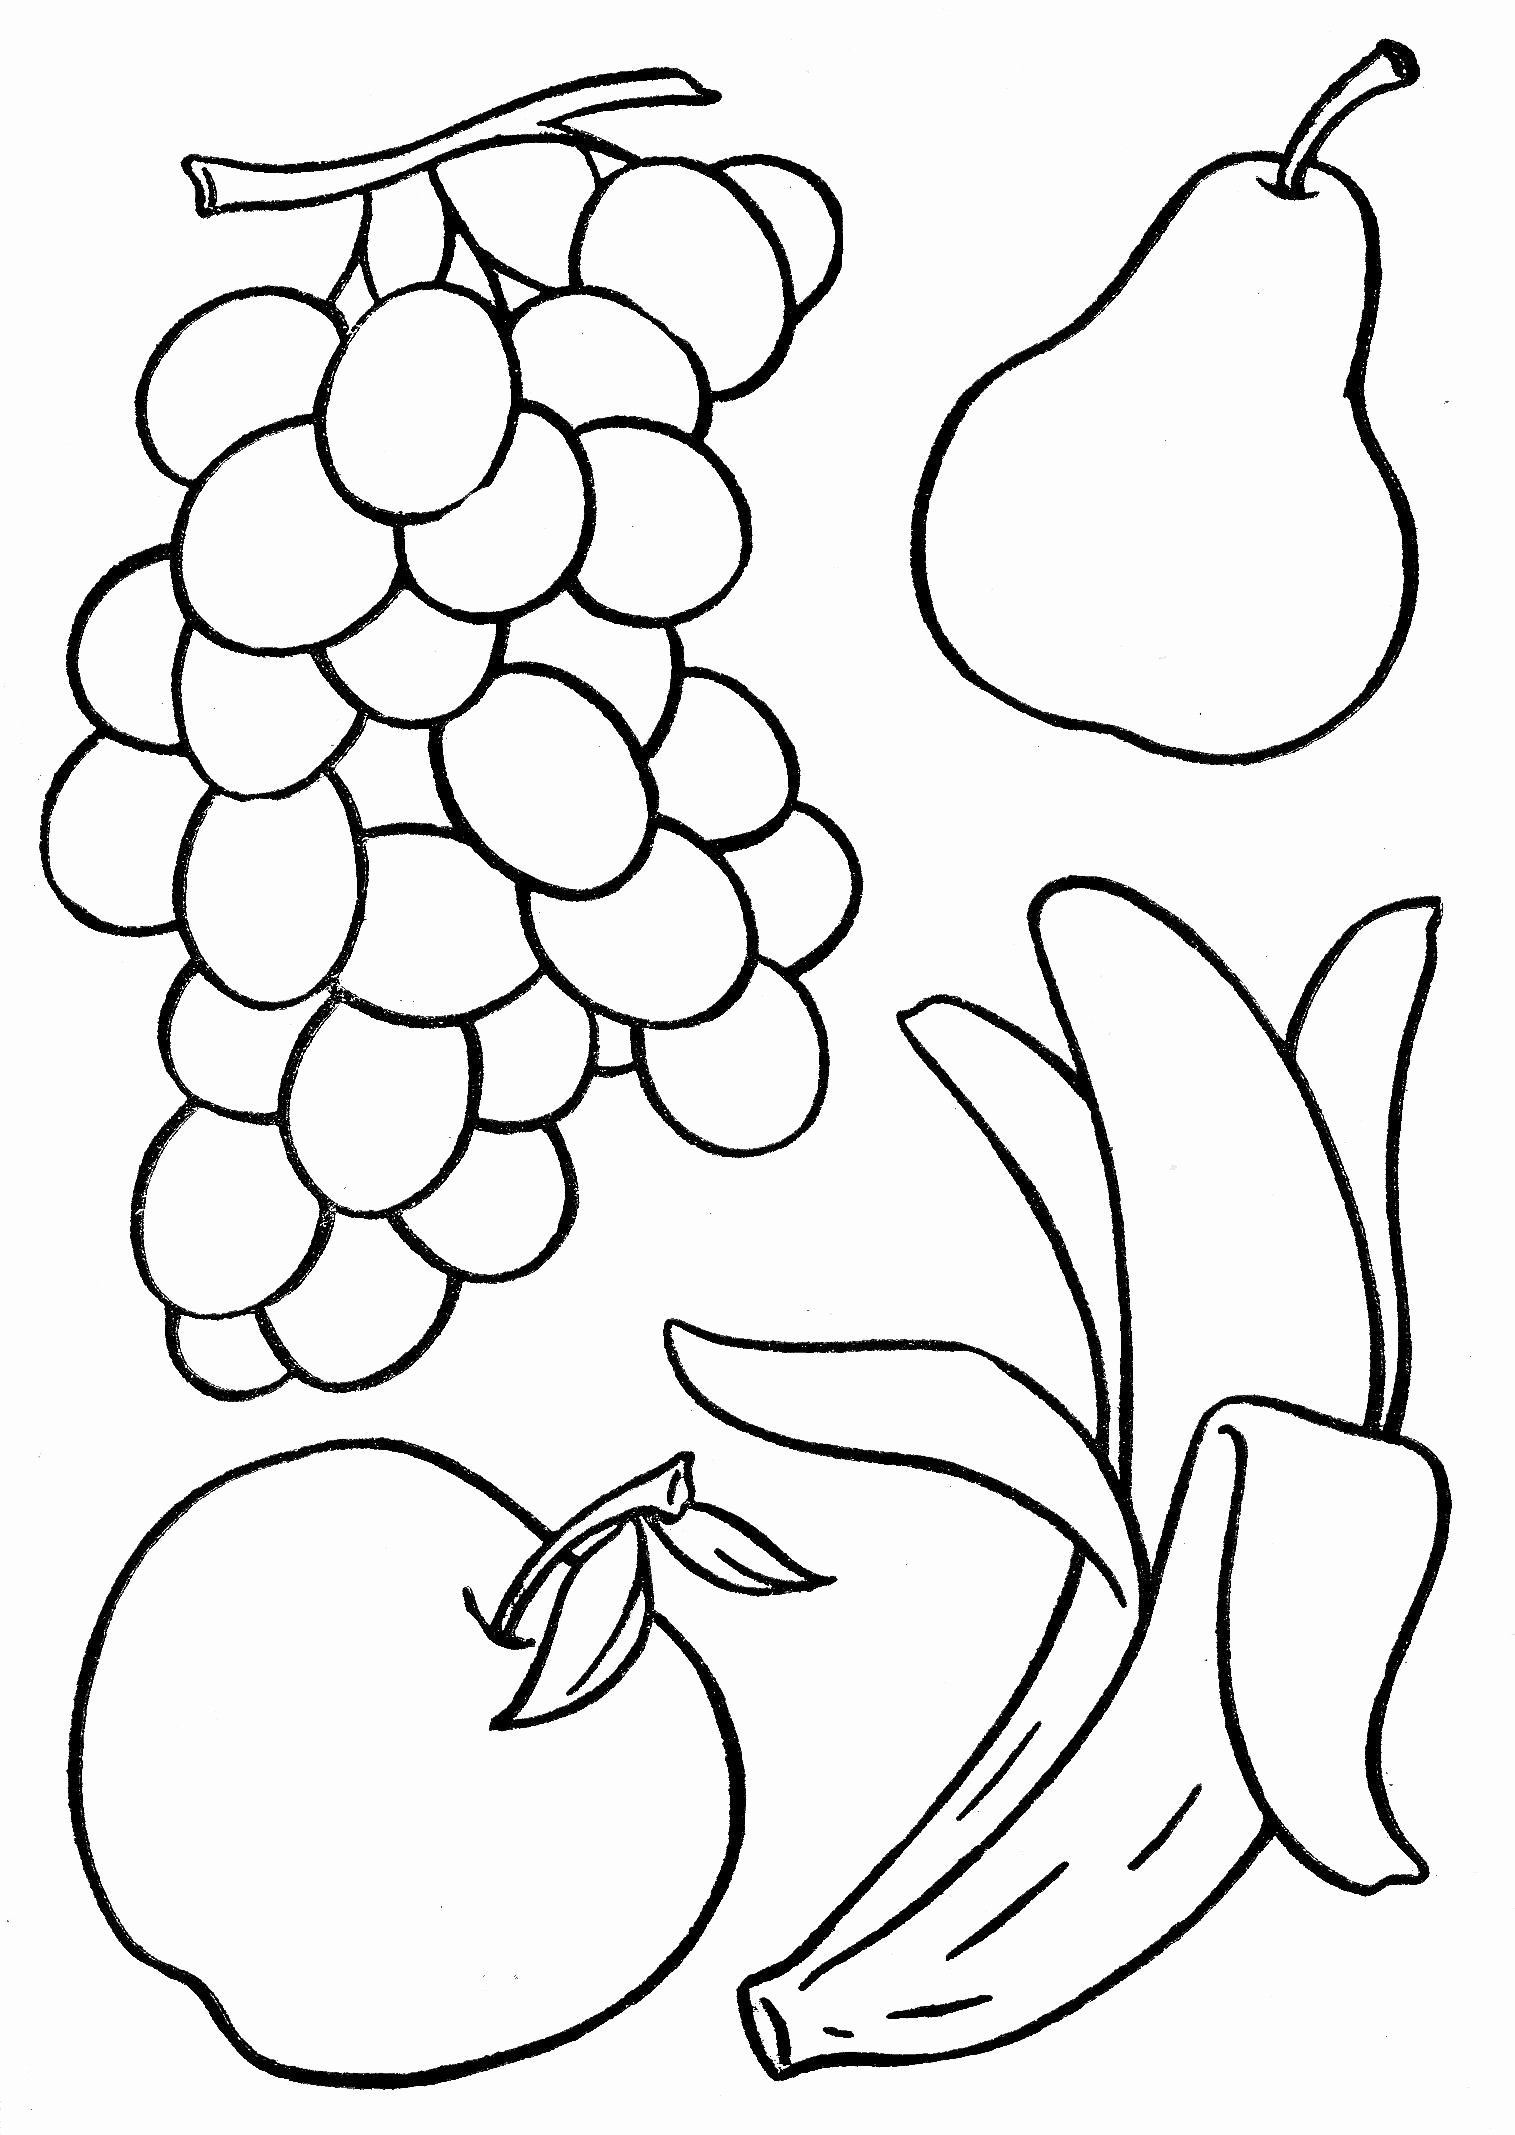 Coloring Pages Fruits And Vegetables Lovely Basketful To Color For Toddler S Activities In 2020 Fruit Coloring Pages Vegetable Coloring Pages Fruit Crafts